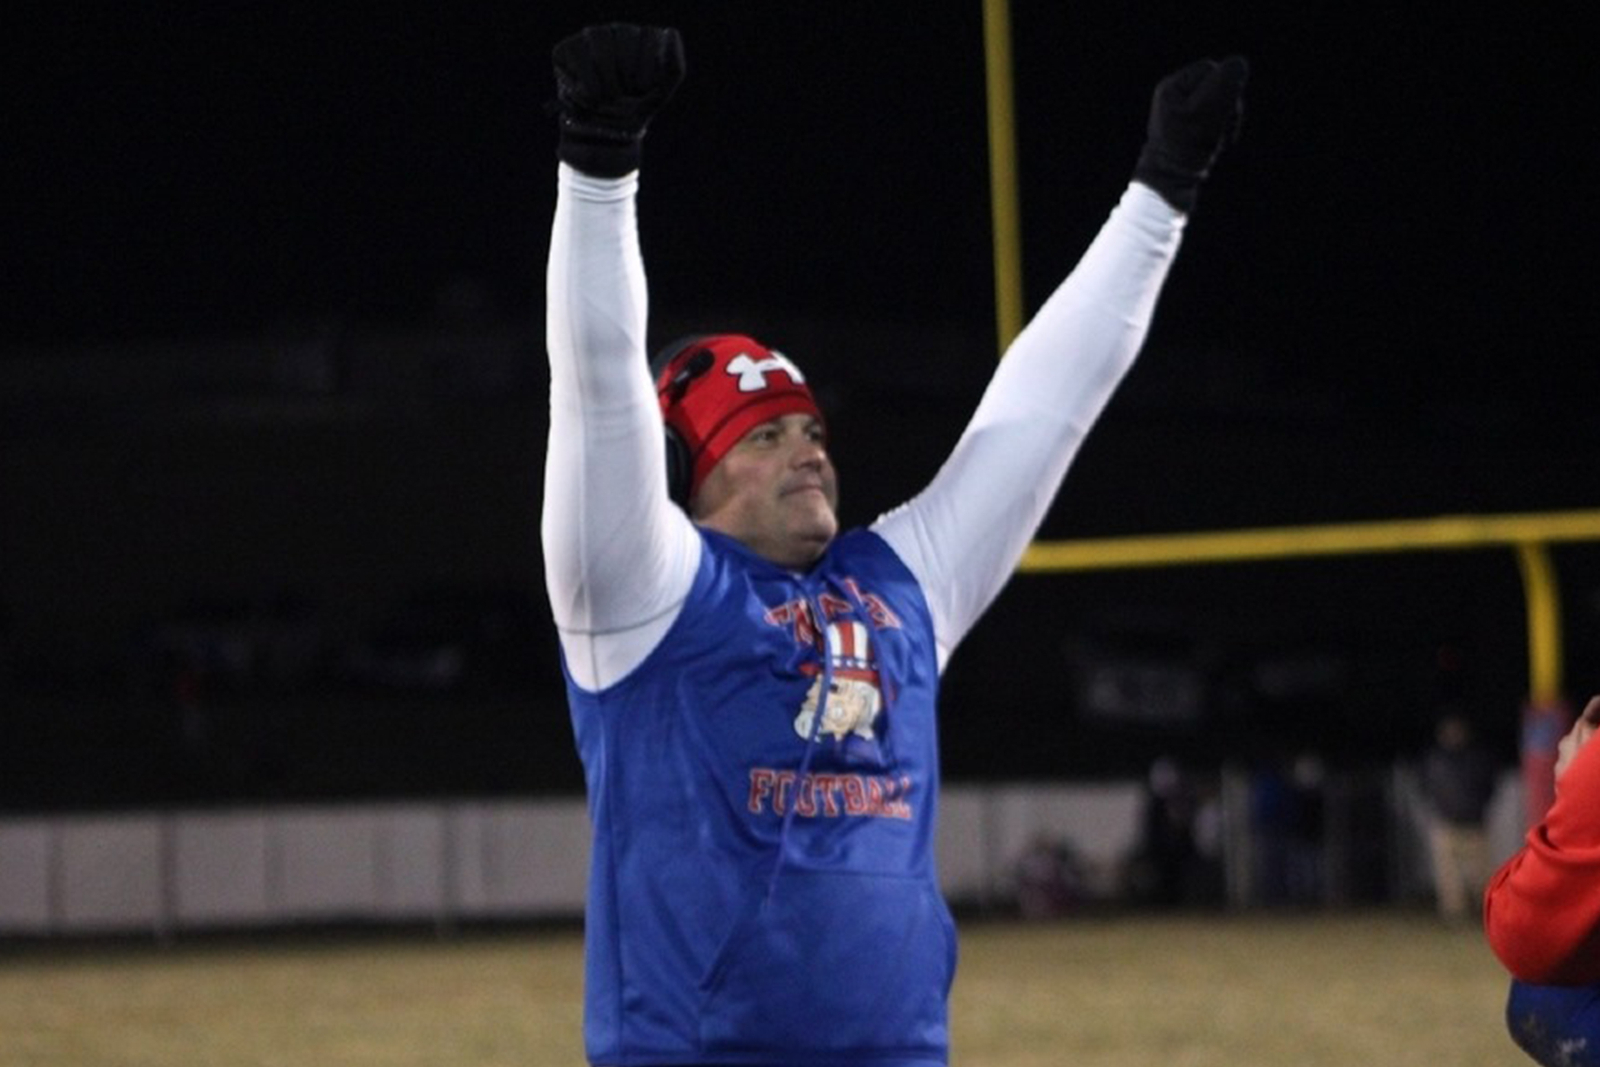 NorthWood Football to participate in honoring Coach Bowsman